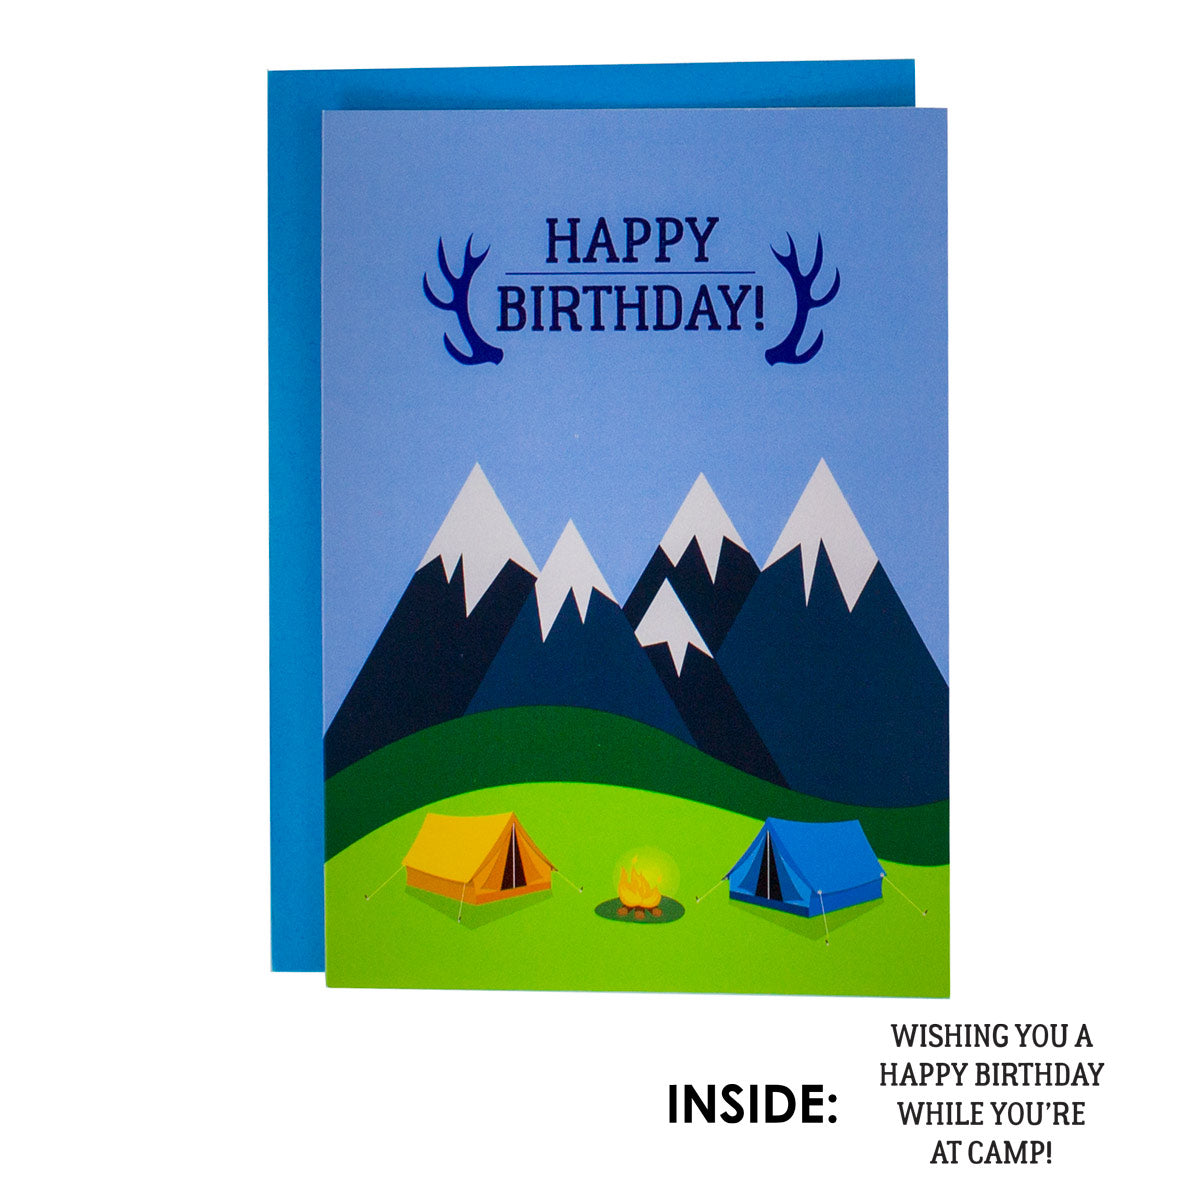 Summer Camp Birthday Cards for Boys, Girls, and Parents